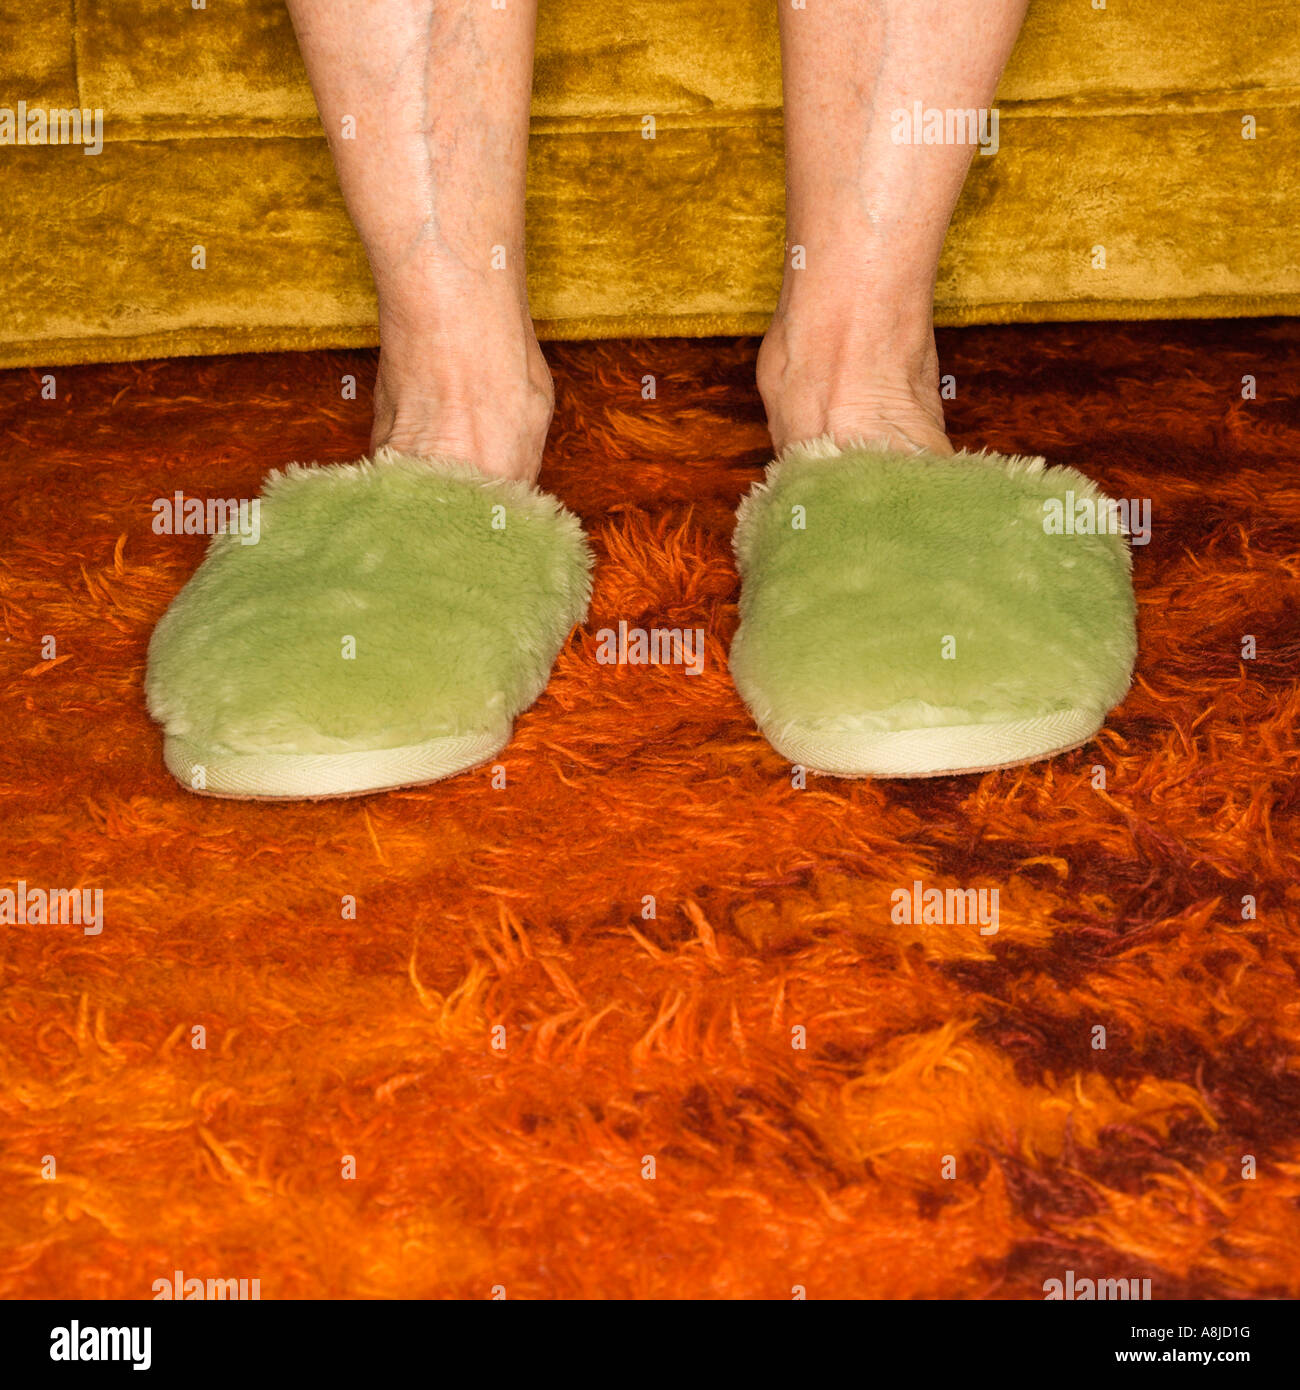 Caucasian senior female feet wearing green bedroom slippers on carpet Stock Photo